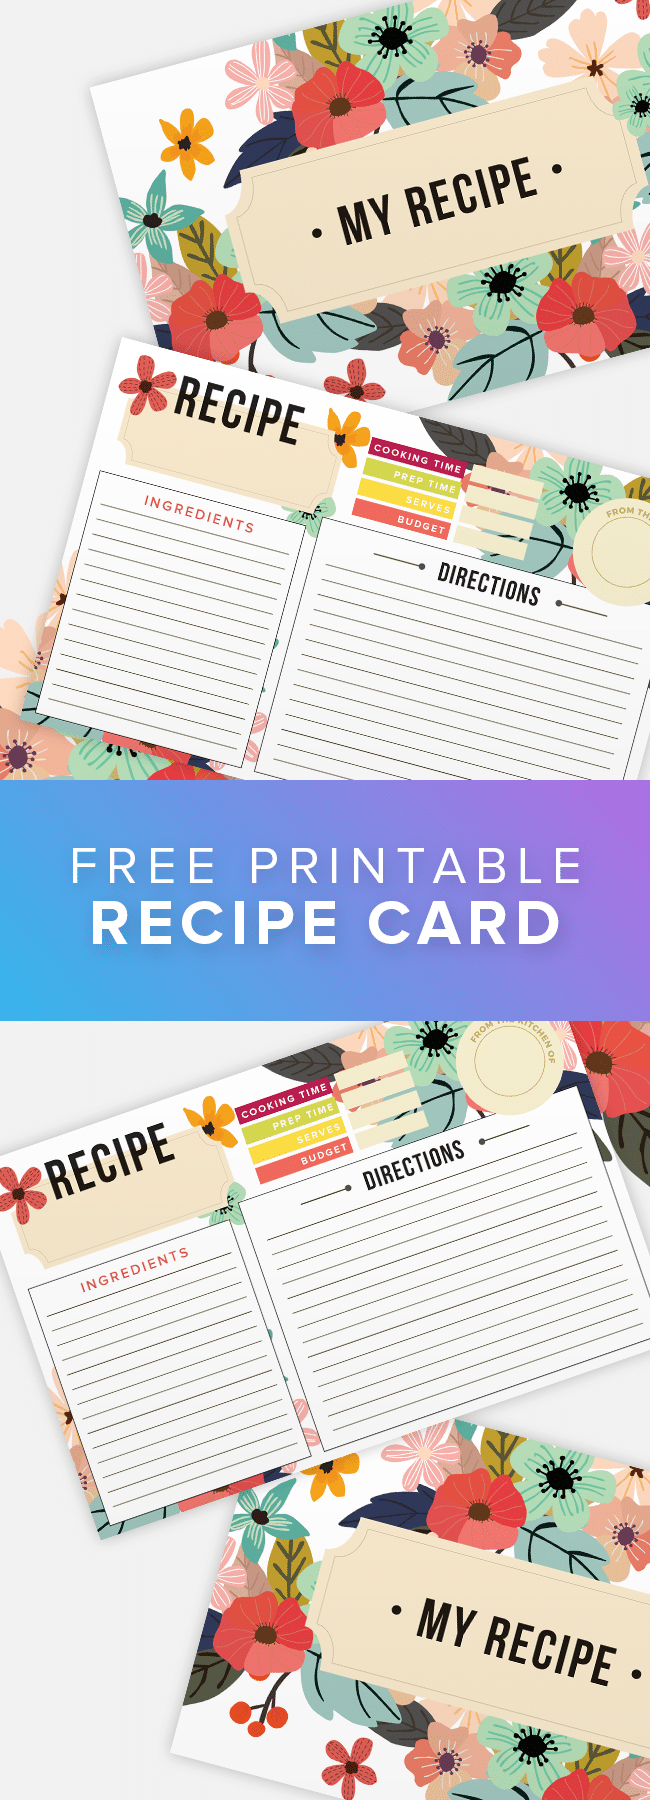 Free Printable Recipe Card - Use these beautiful free recipe cards to get organized!